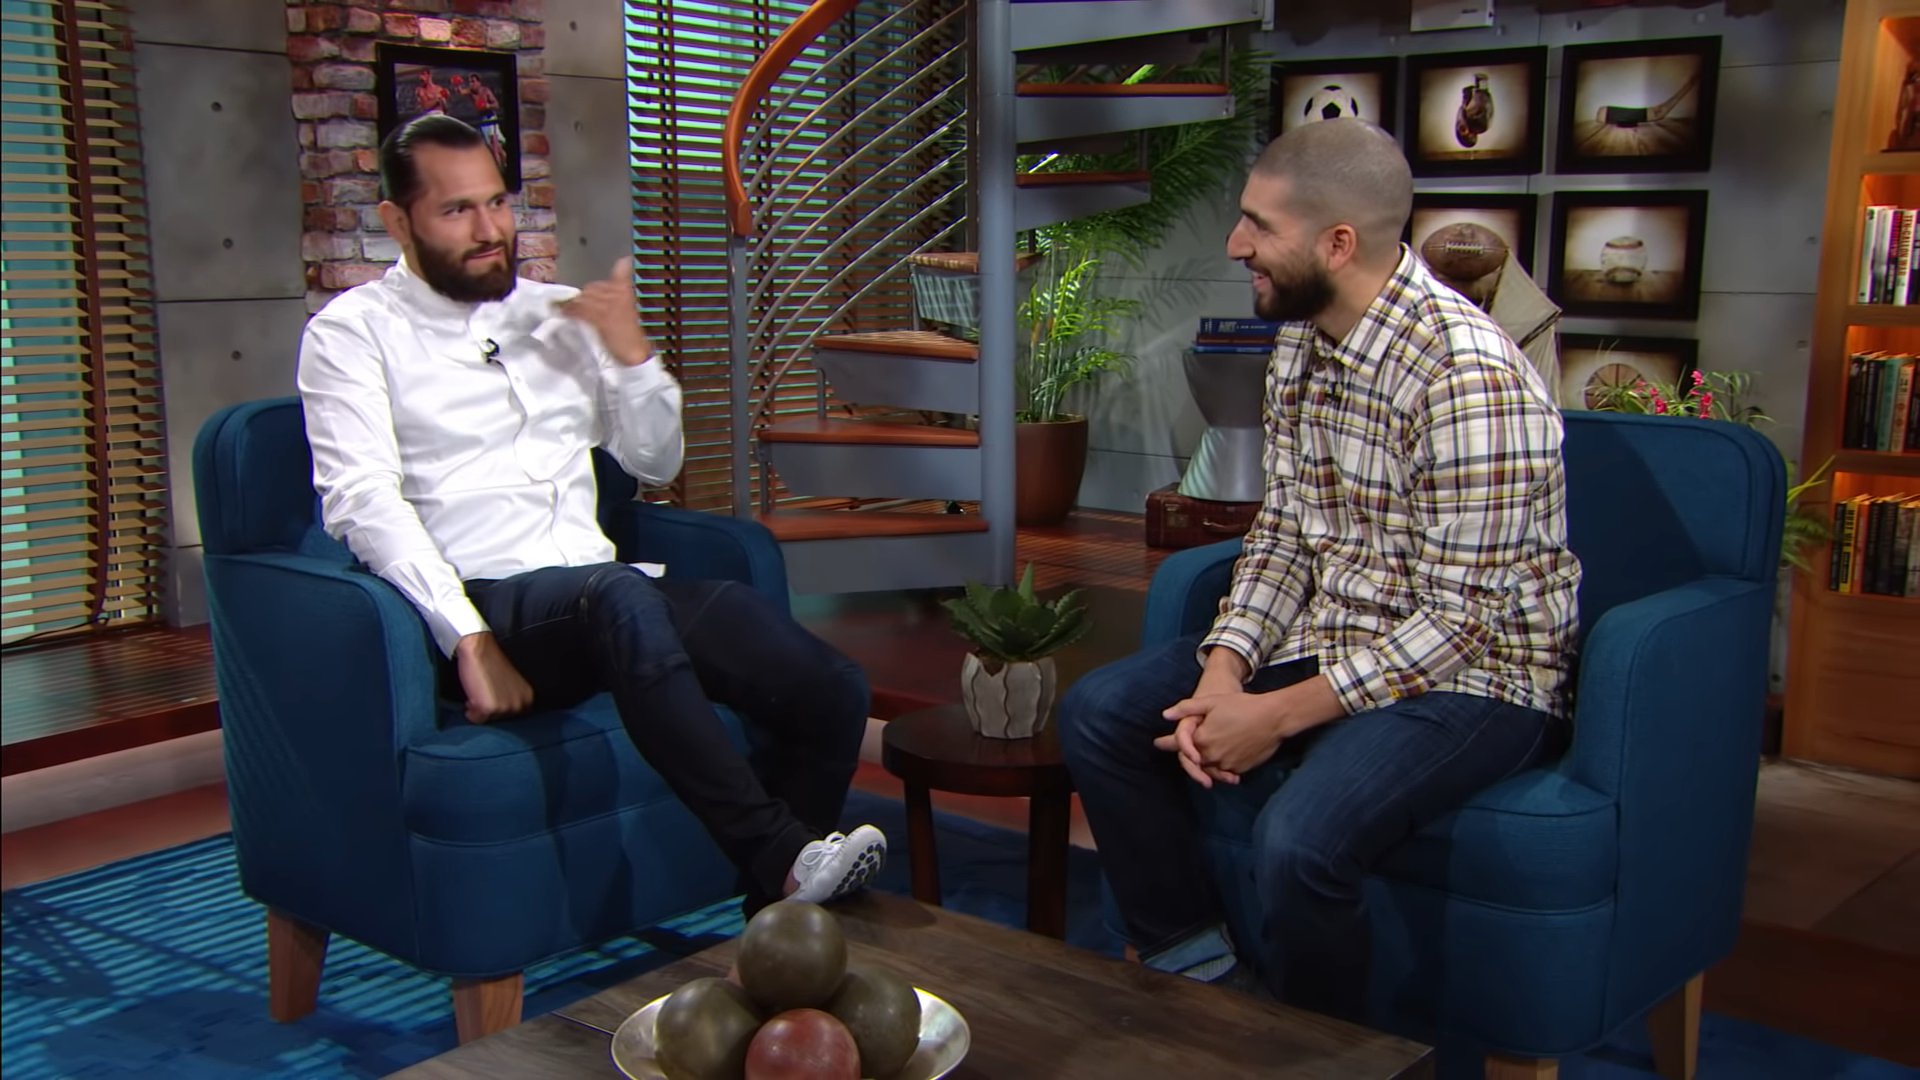 Recapping Jorge Masvidal's sit down interview with Ariel Helwani - Jorge